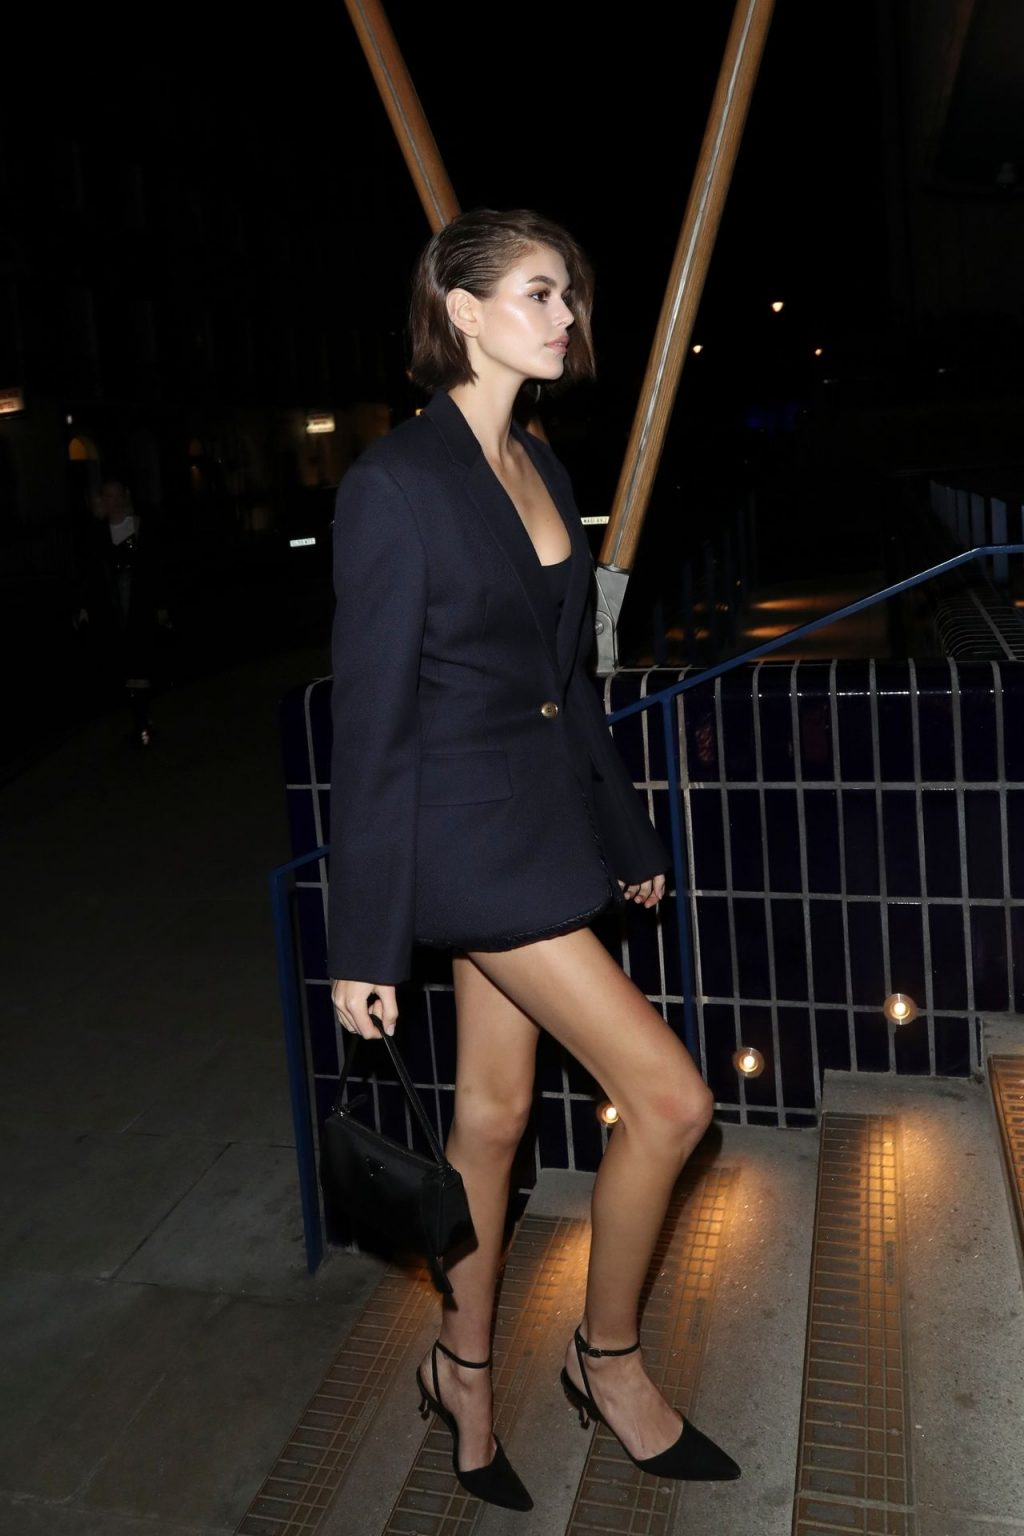 Kaia Gerber Shows Her Panties While Attending the LOVE magazine LFW Party (30 Photos)